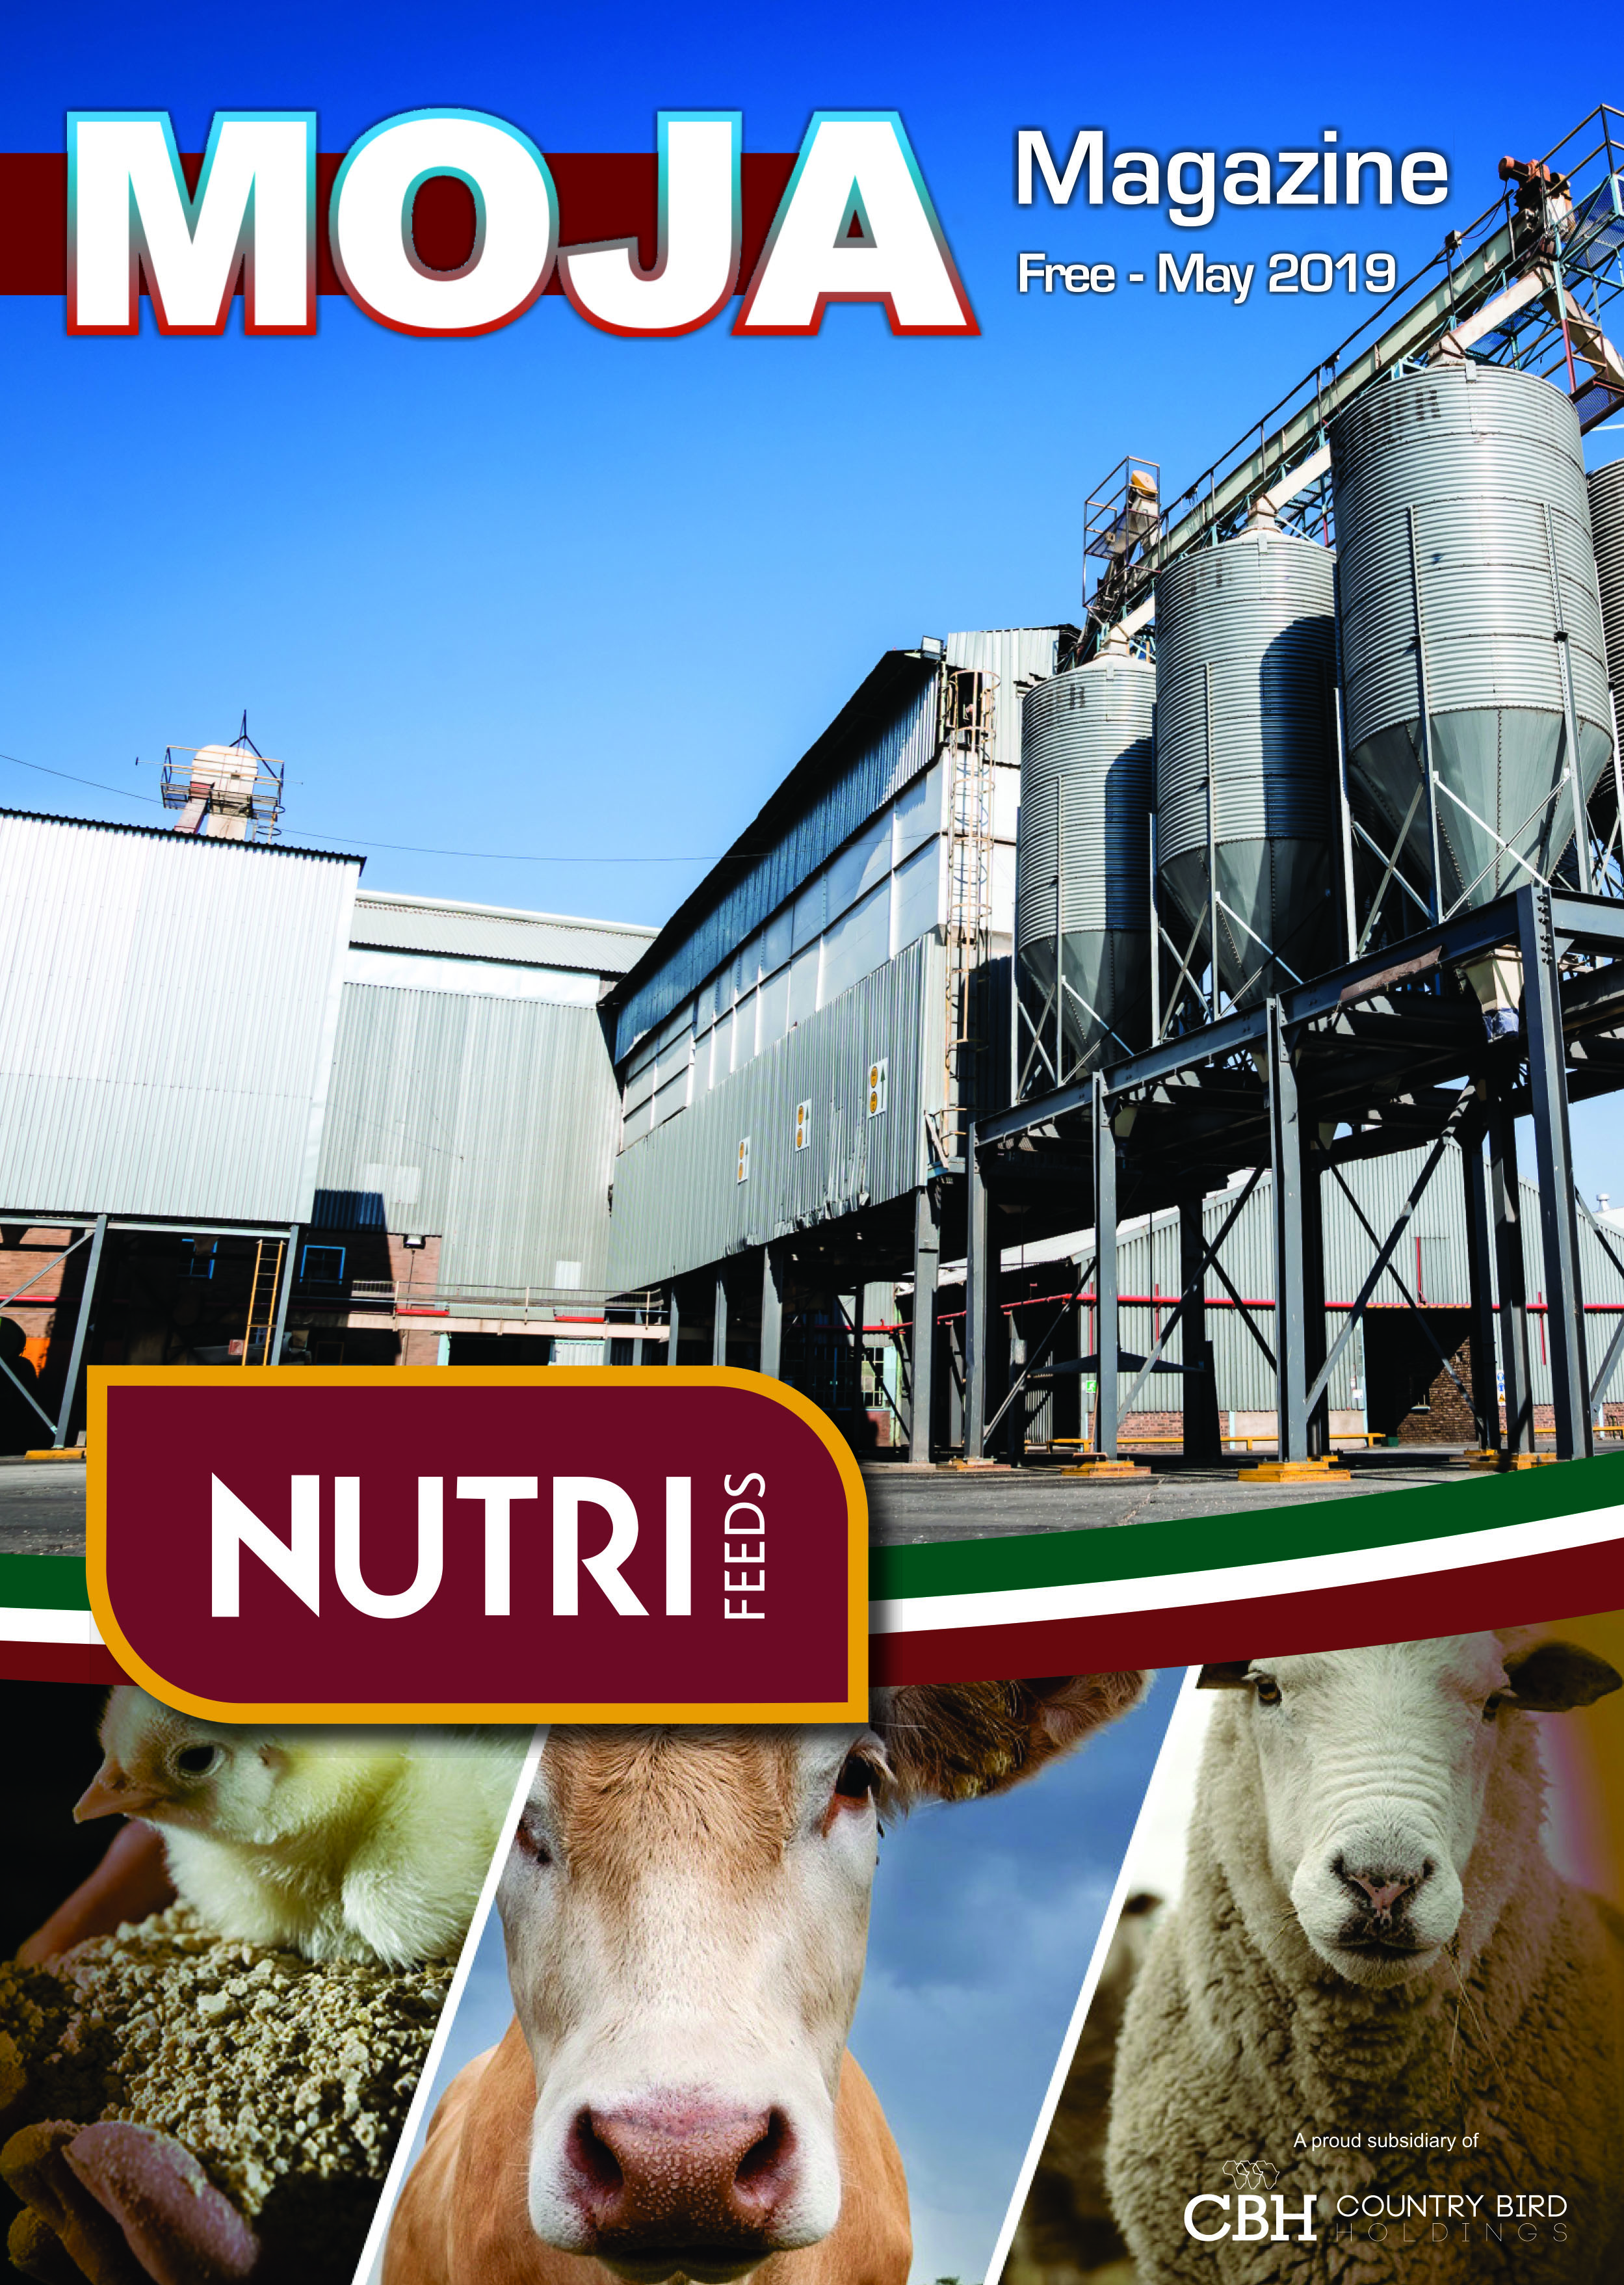 Nutri Feed Leader & global player in the animal feed industry